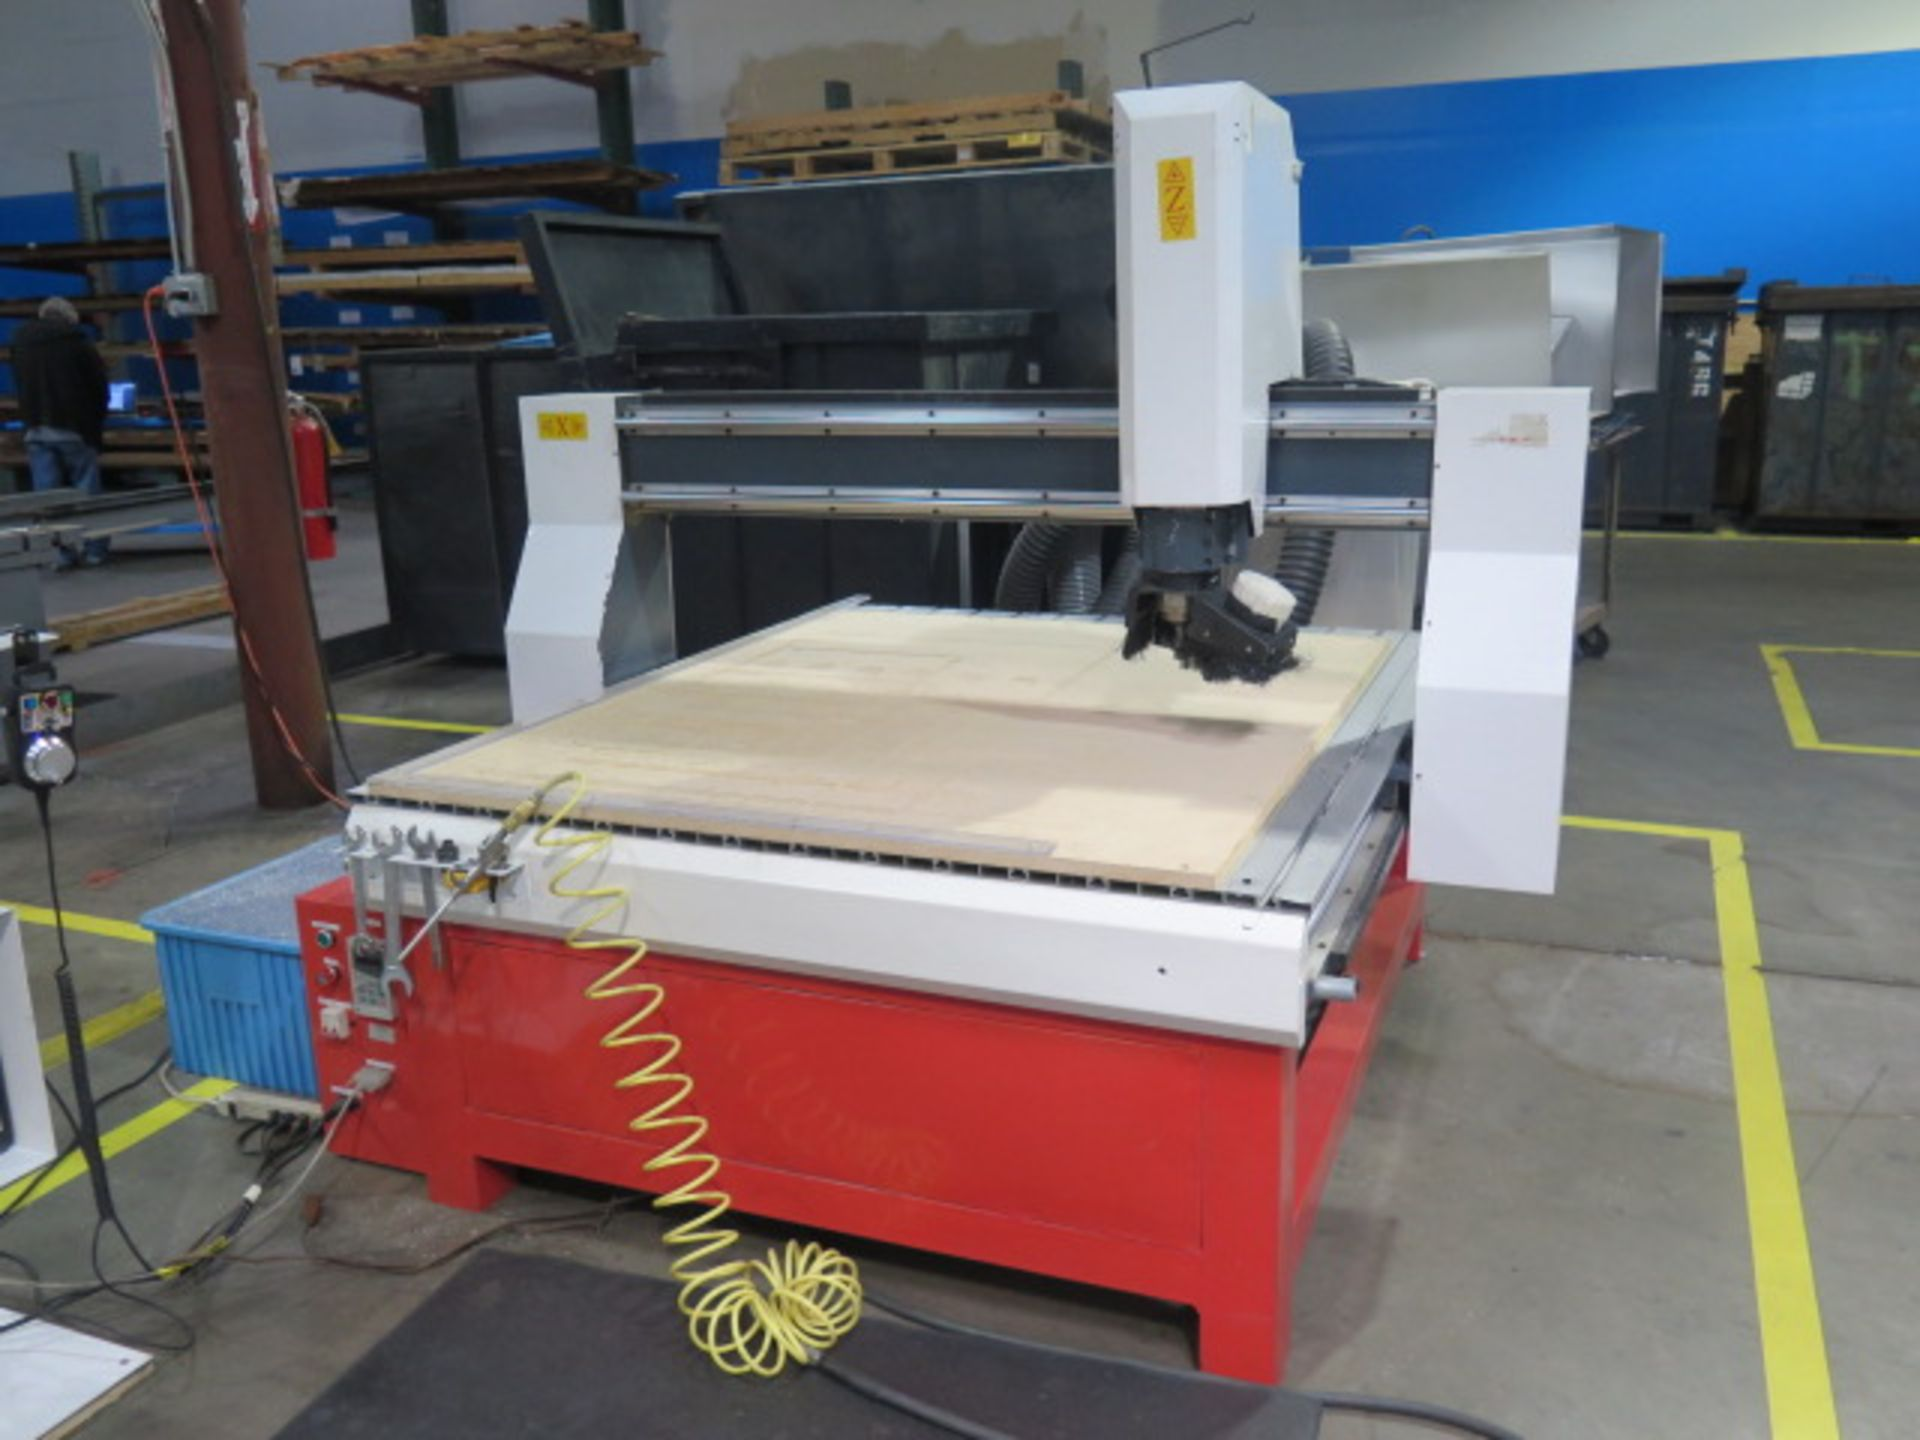 """Industrial CNC """"Mach 3"""" 48"""" x 48"""" Pro Series CNC Router w/ """"Mach 3"""" System Software, 48"""" x 48"""" x 12"""" - Image 2 of 12"""